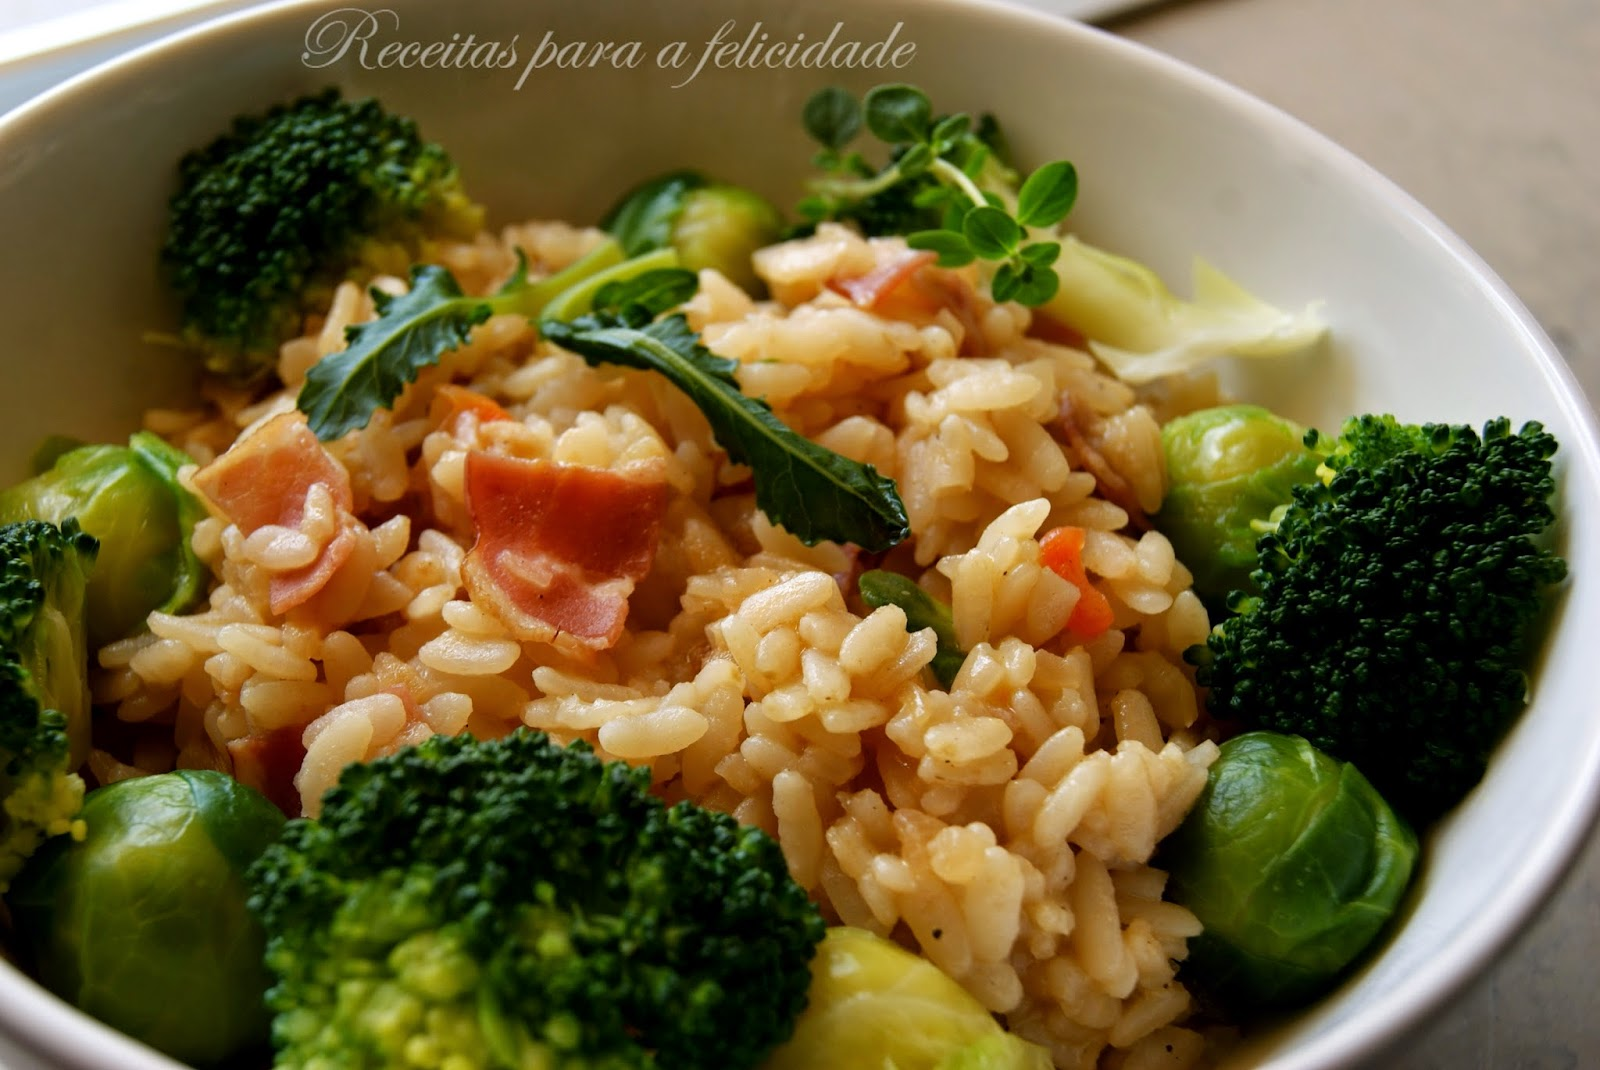 Arroz com Legumes/Confort Food